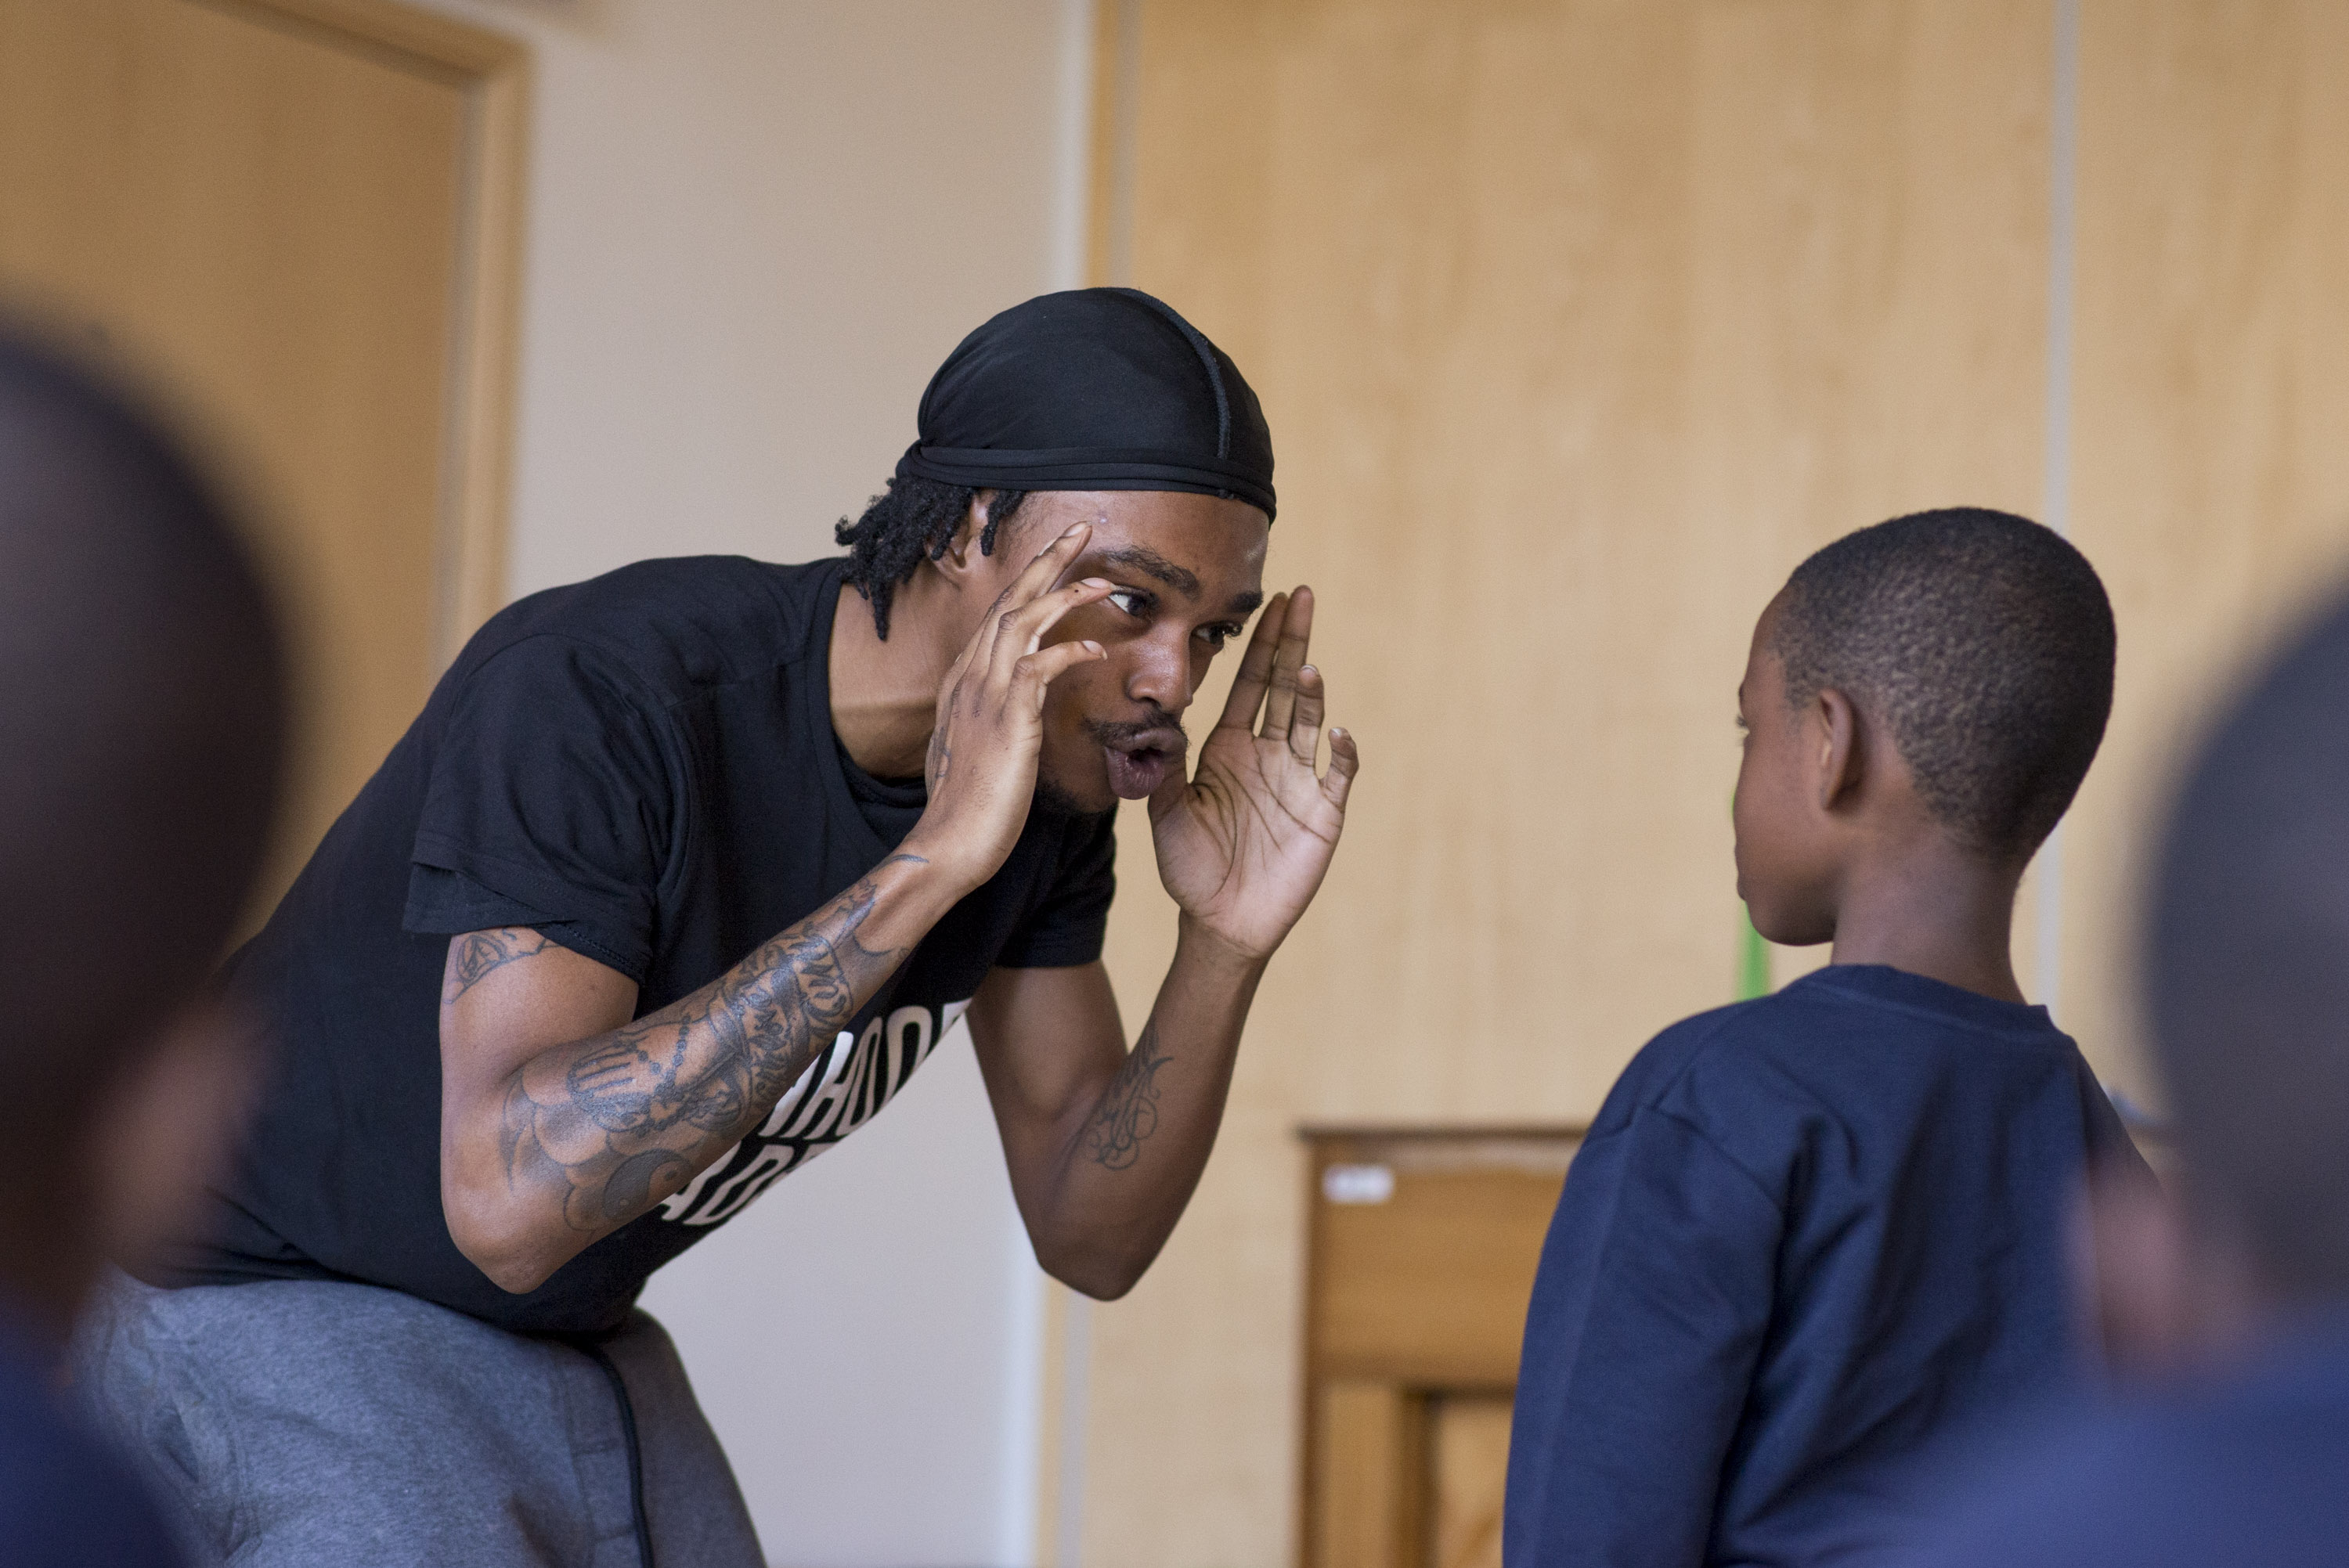 Freeman coaches a young Manhood Academy member on how to resist giving into peer pressure.